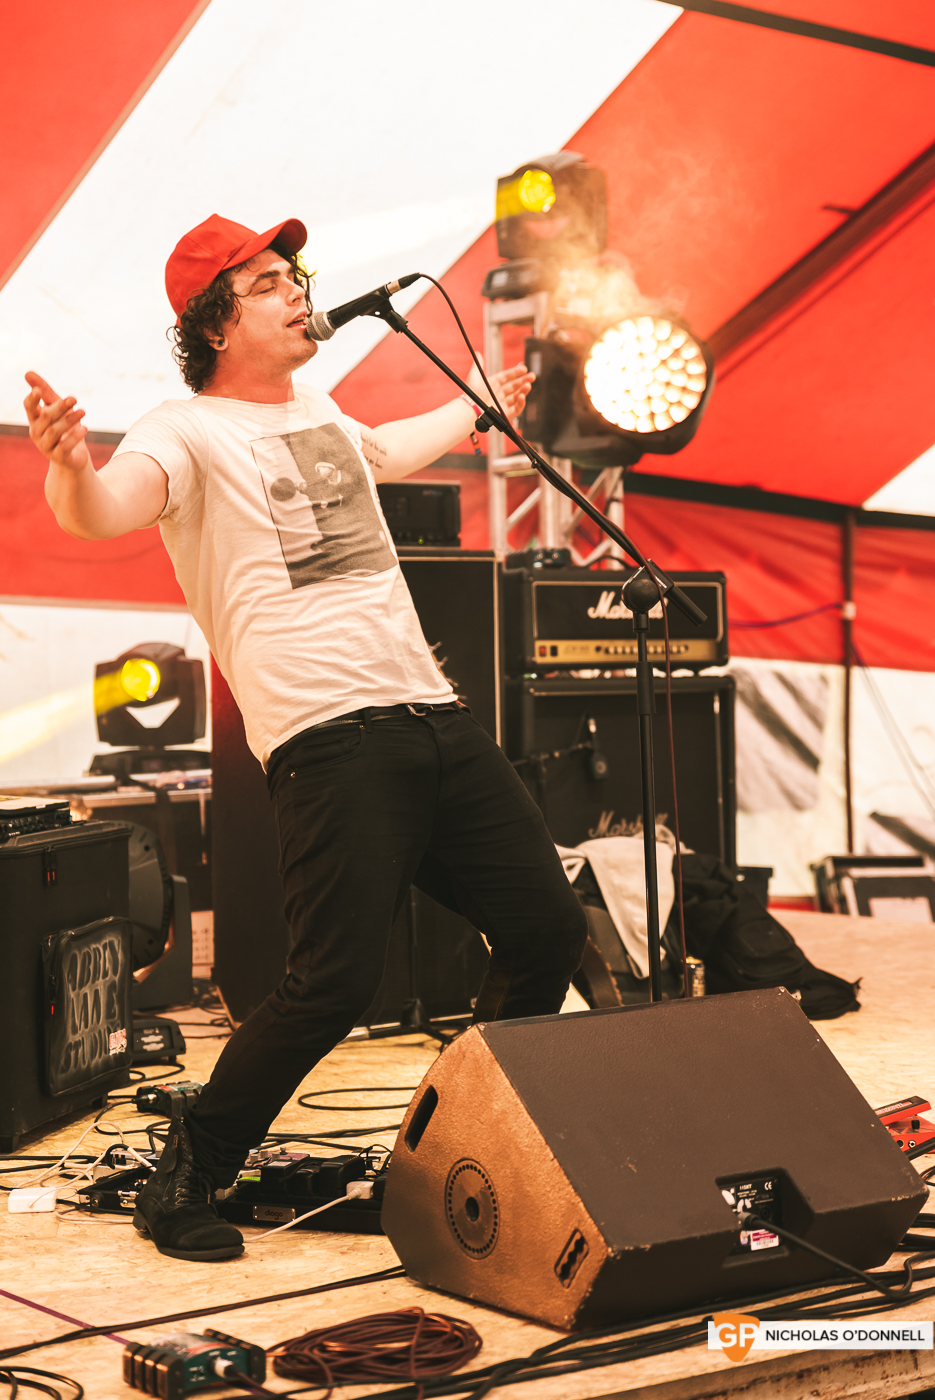 KnockanStockan 19- I Am The Main Character. Photos by Nicholas O'Donnell.